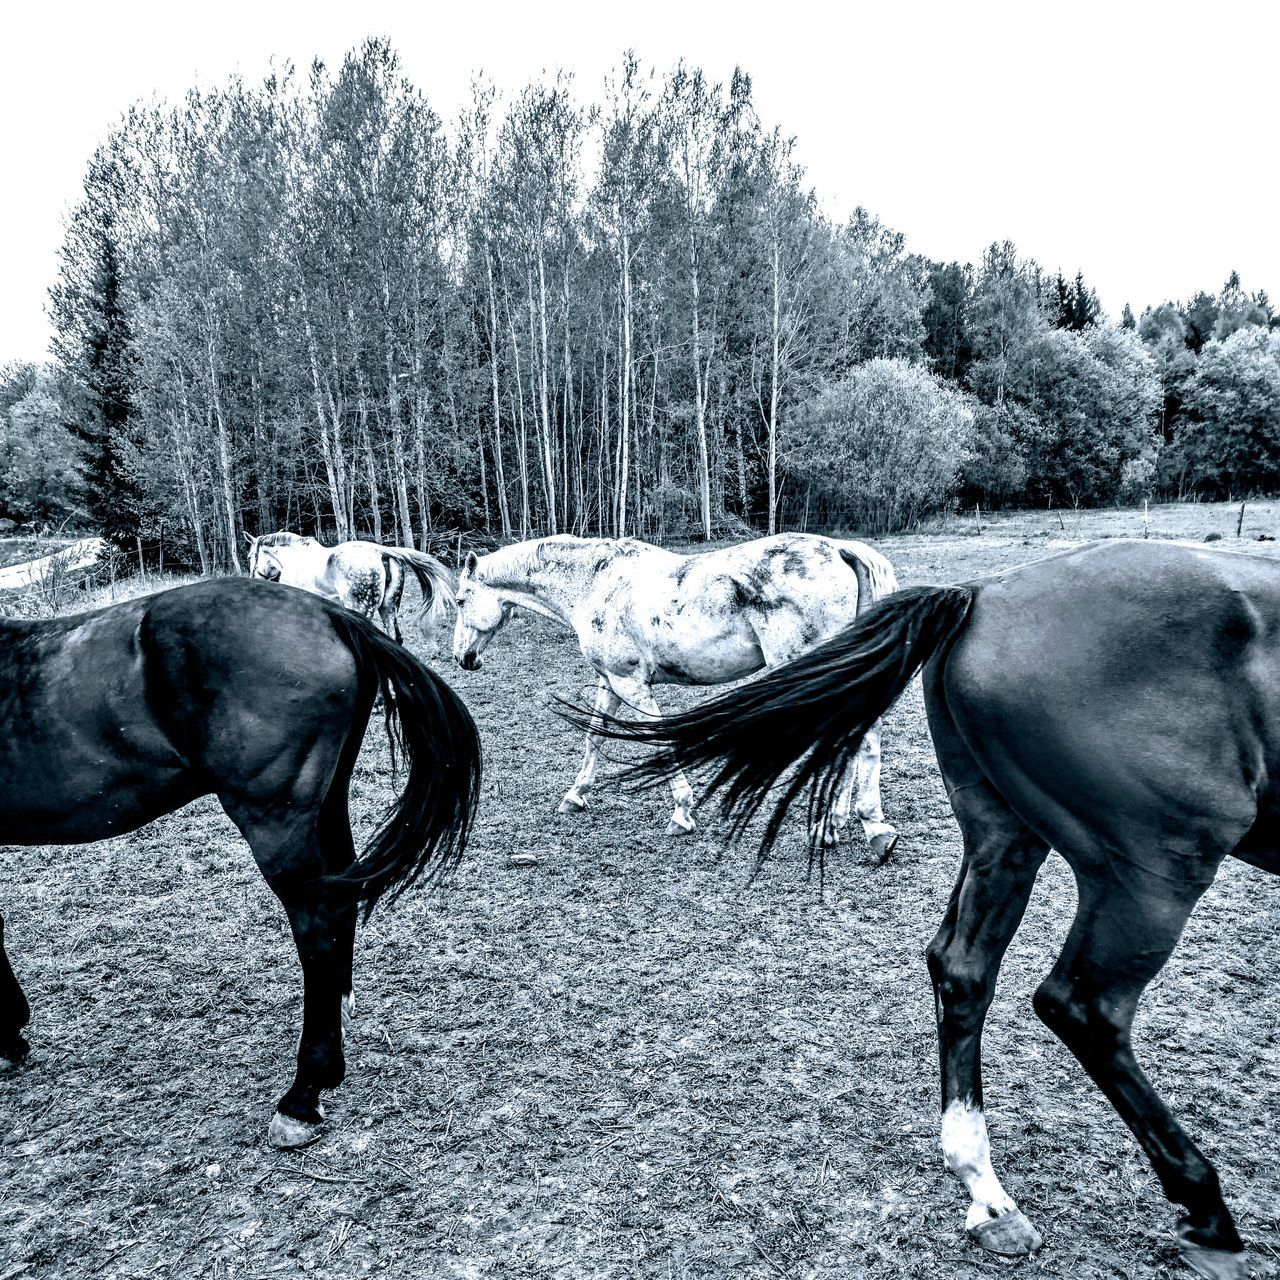 Animal Themes Horse Domestic Animals Mammal No People Outdoors Working Animal Animals In The Wild Full Length Livestock Adult Animal Landscape Tree Day Nature Sky